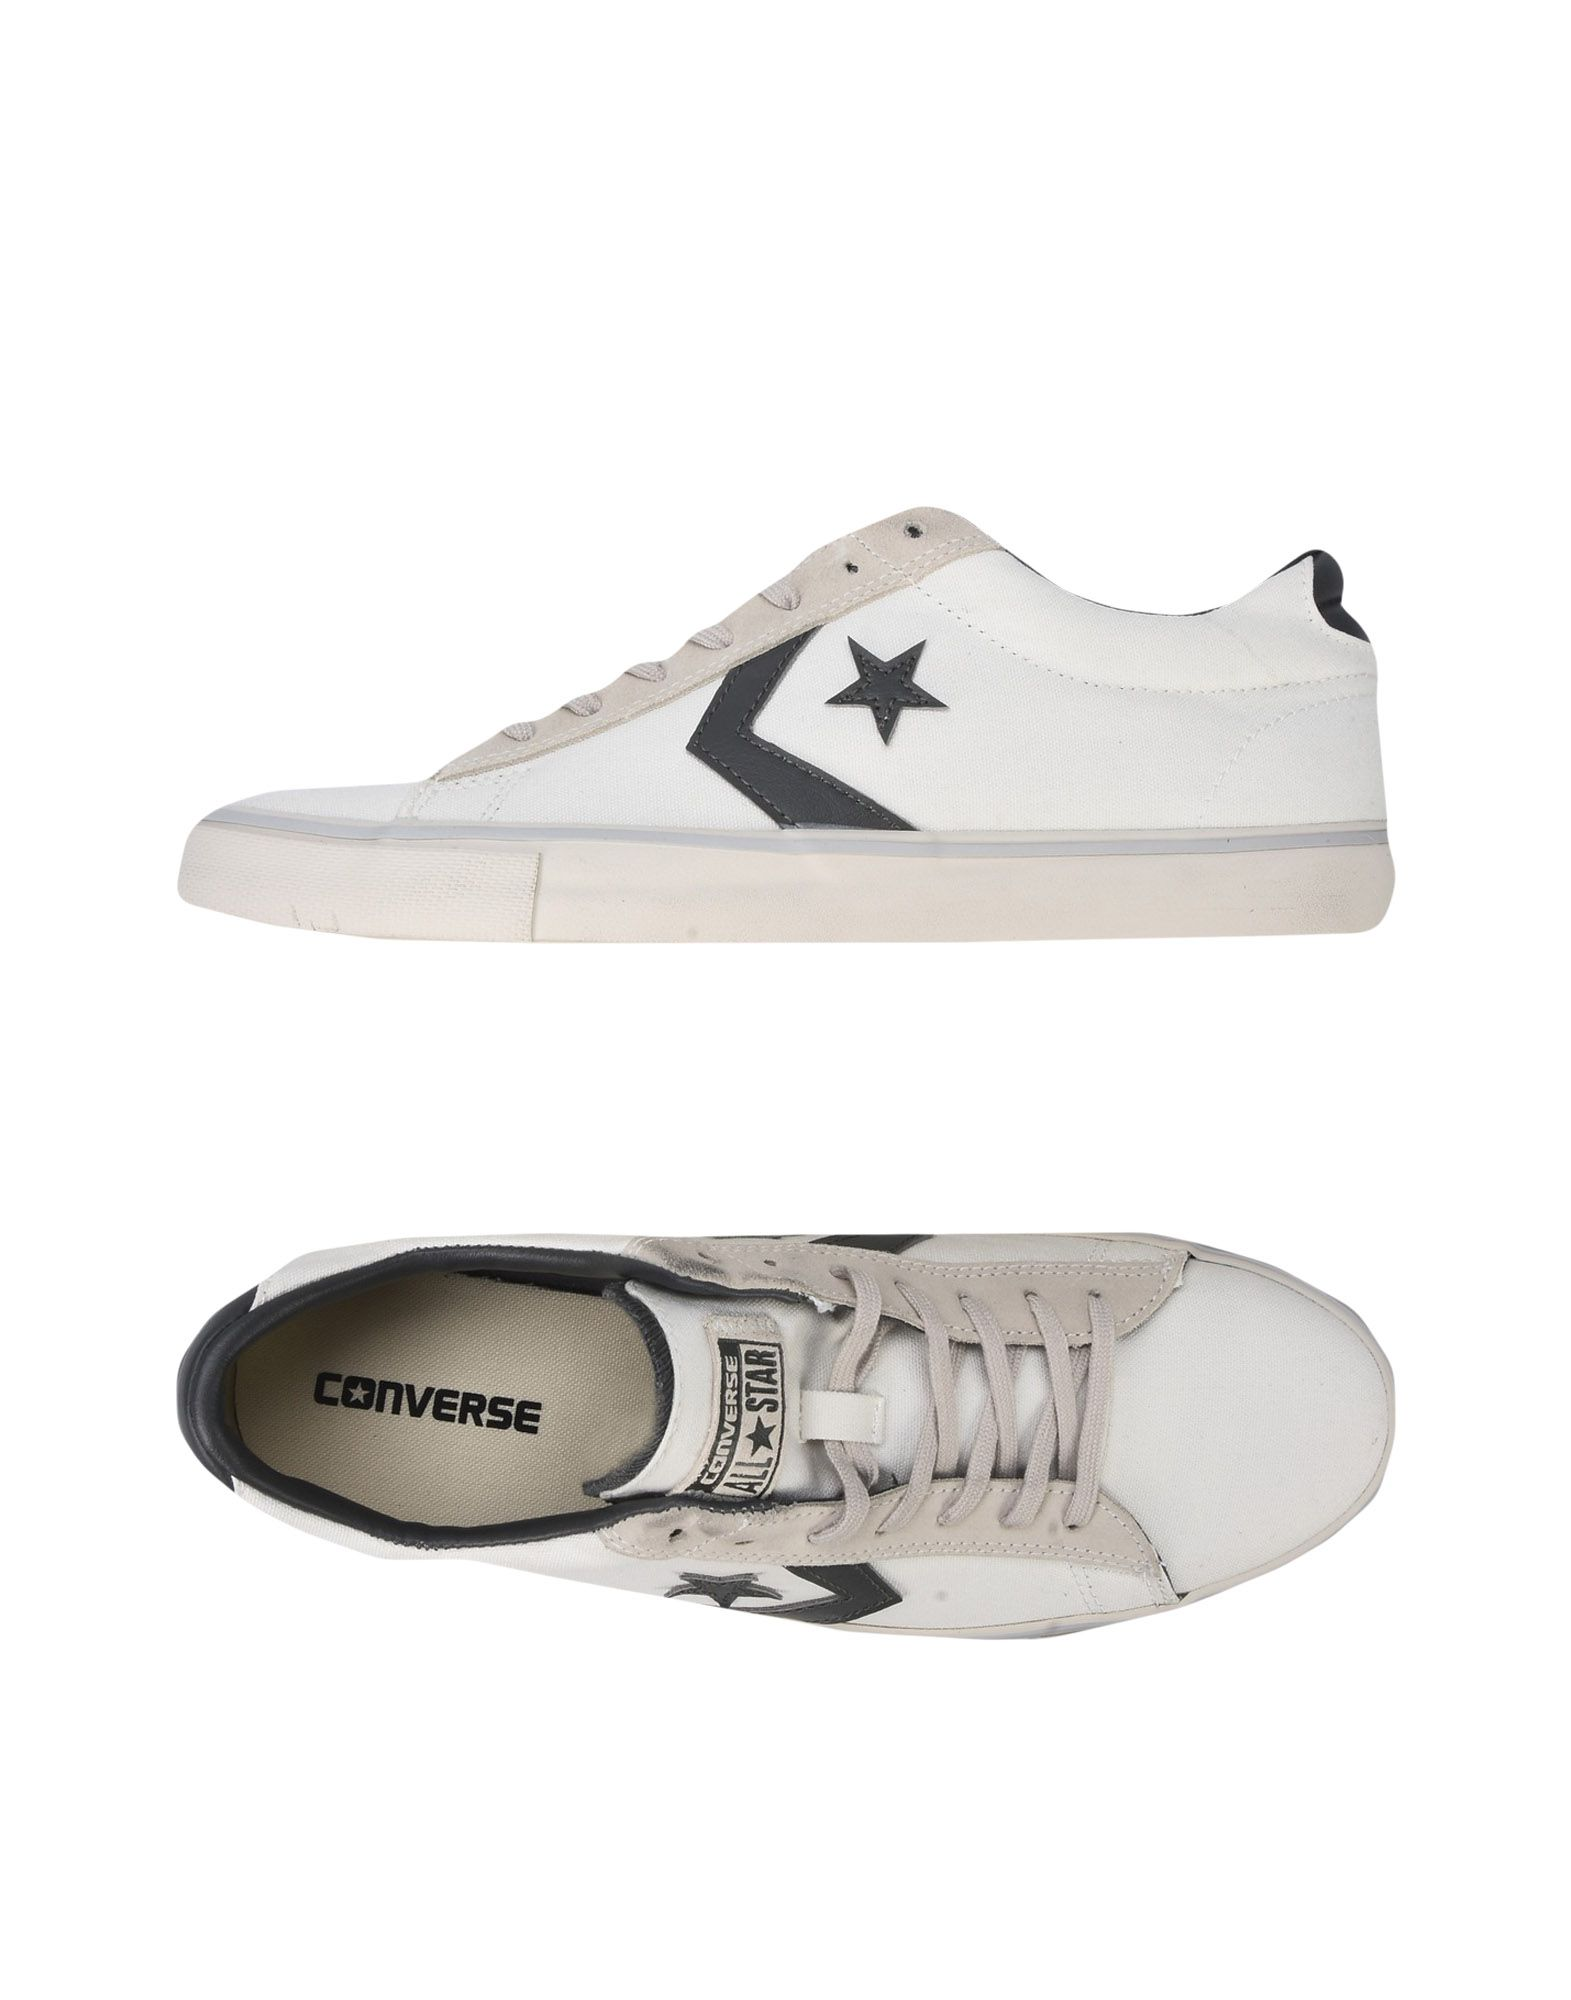 Sneakers Converse Cons Pro Leather Vulc Ox Canvas Distressed - Homme - Sneakers Converse Cons sur